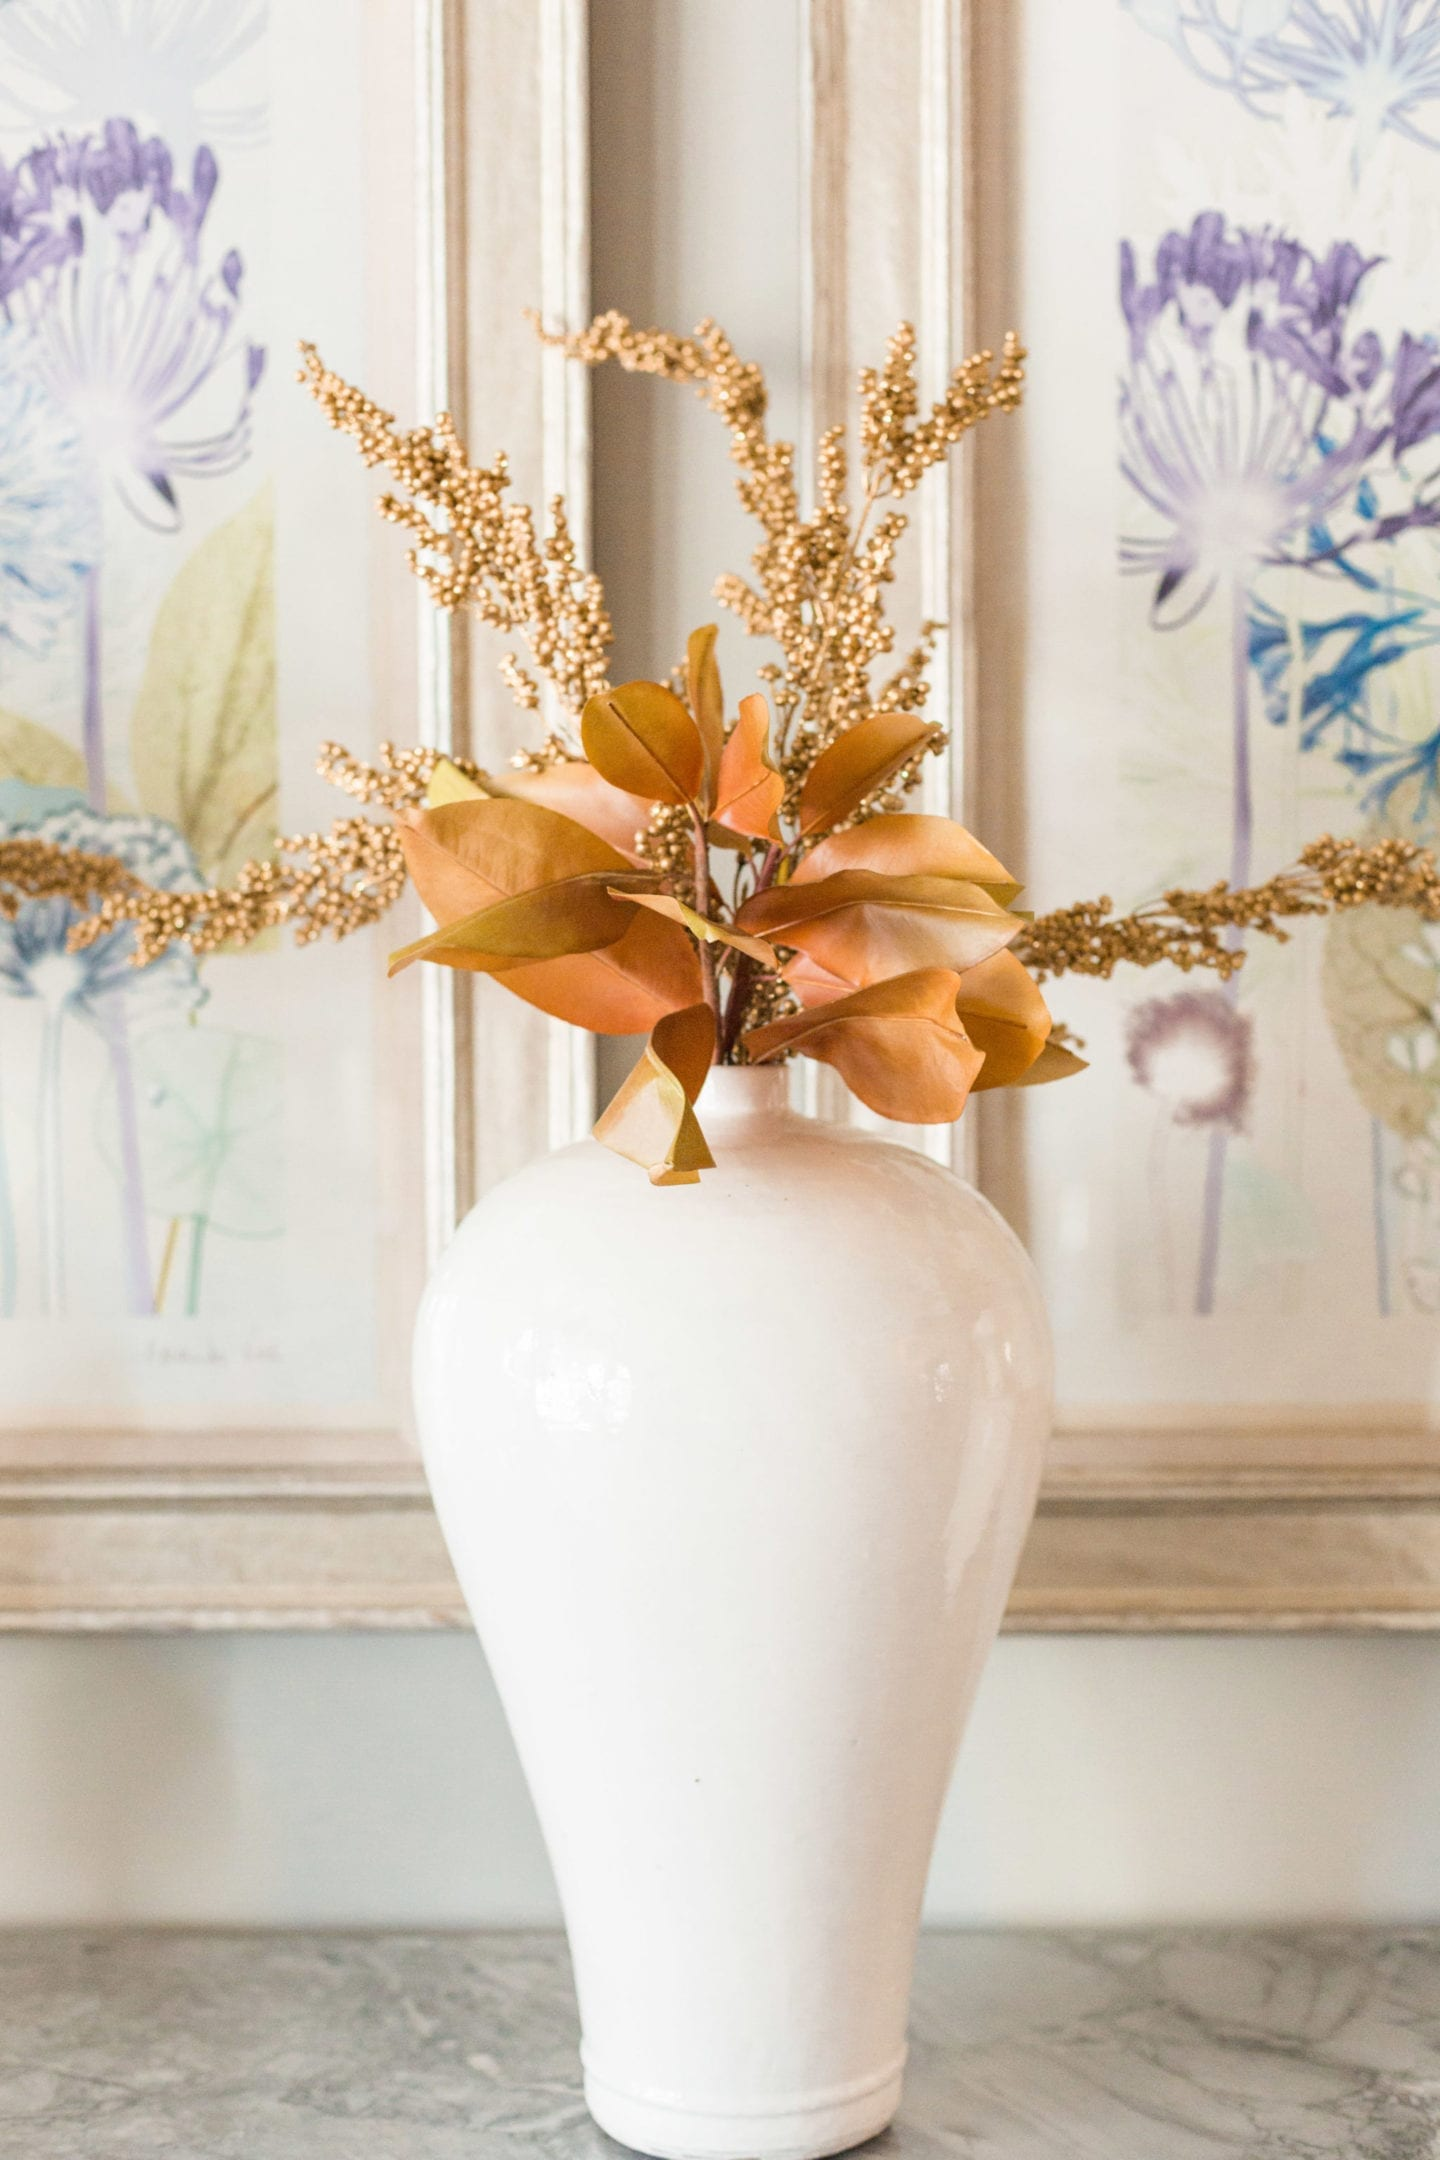 Fall Flowers in white vase. Artificial fall flowers and fall leaves for Thanksgiving centerpiece.